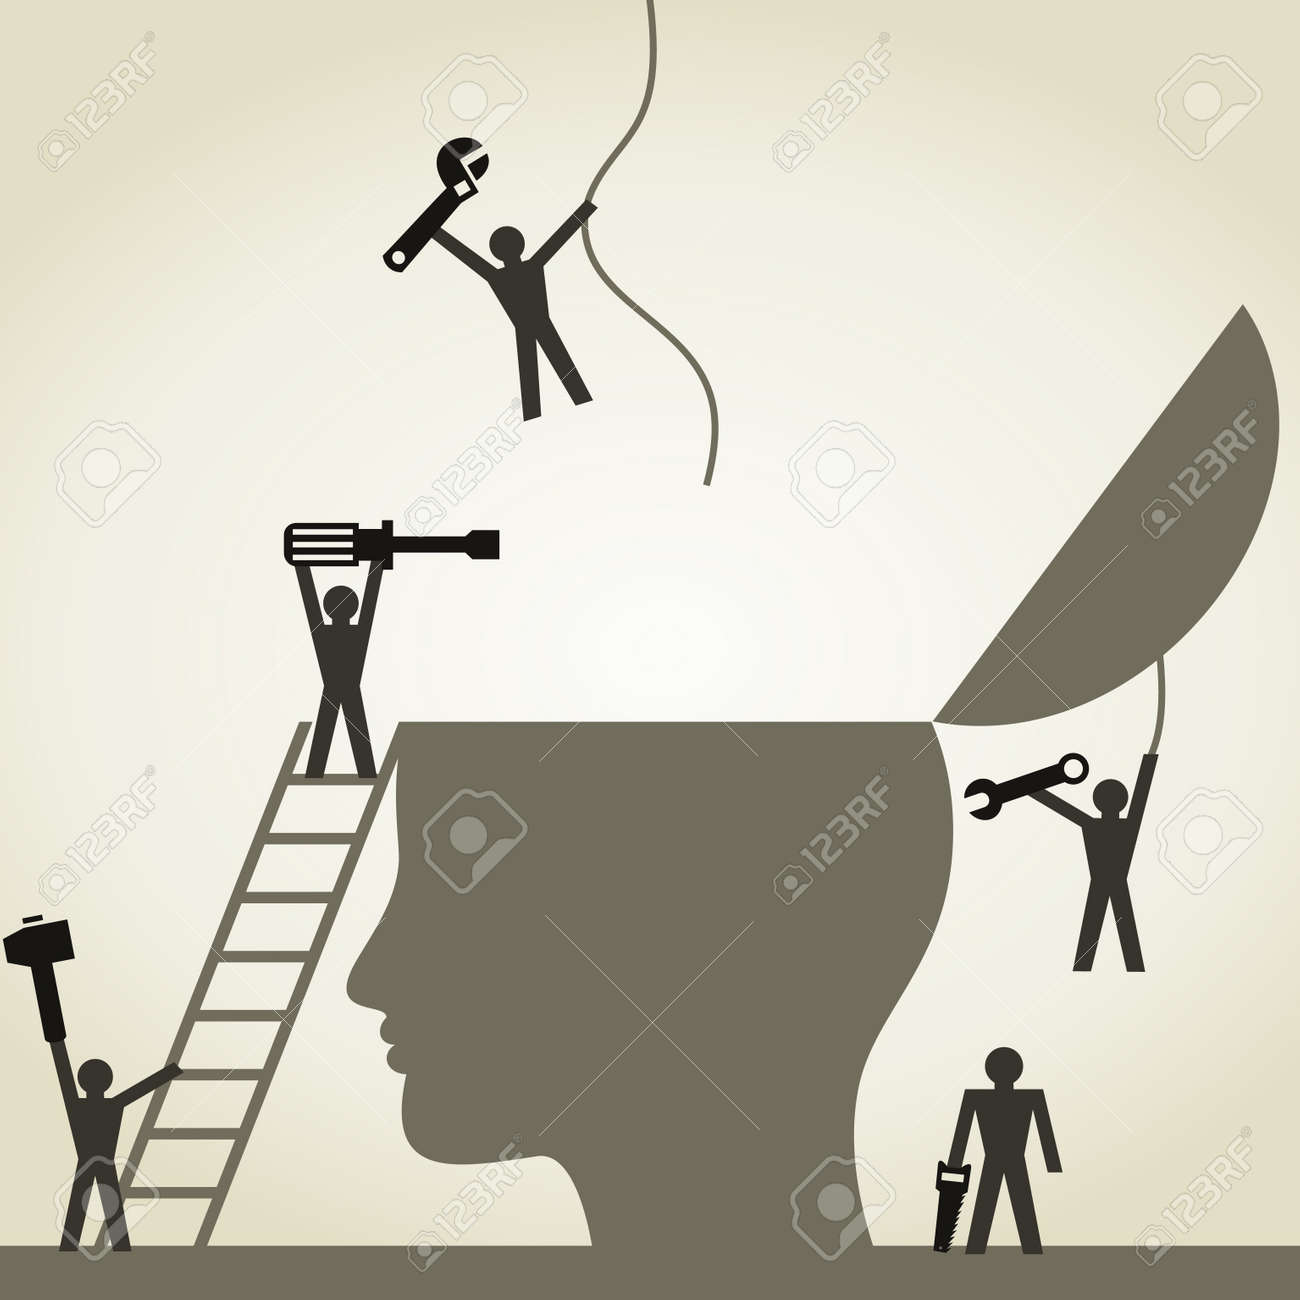 People repair a head. A vector illustration Stock Vector - 22007778